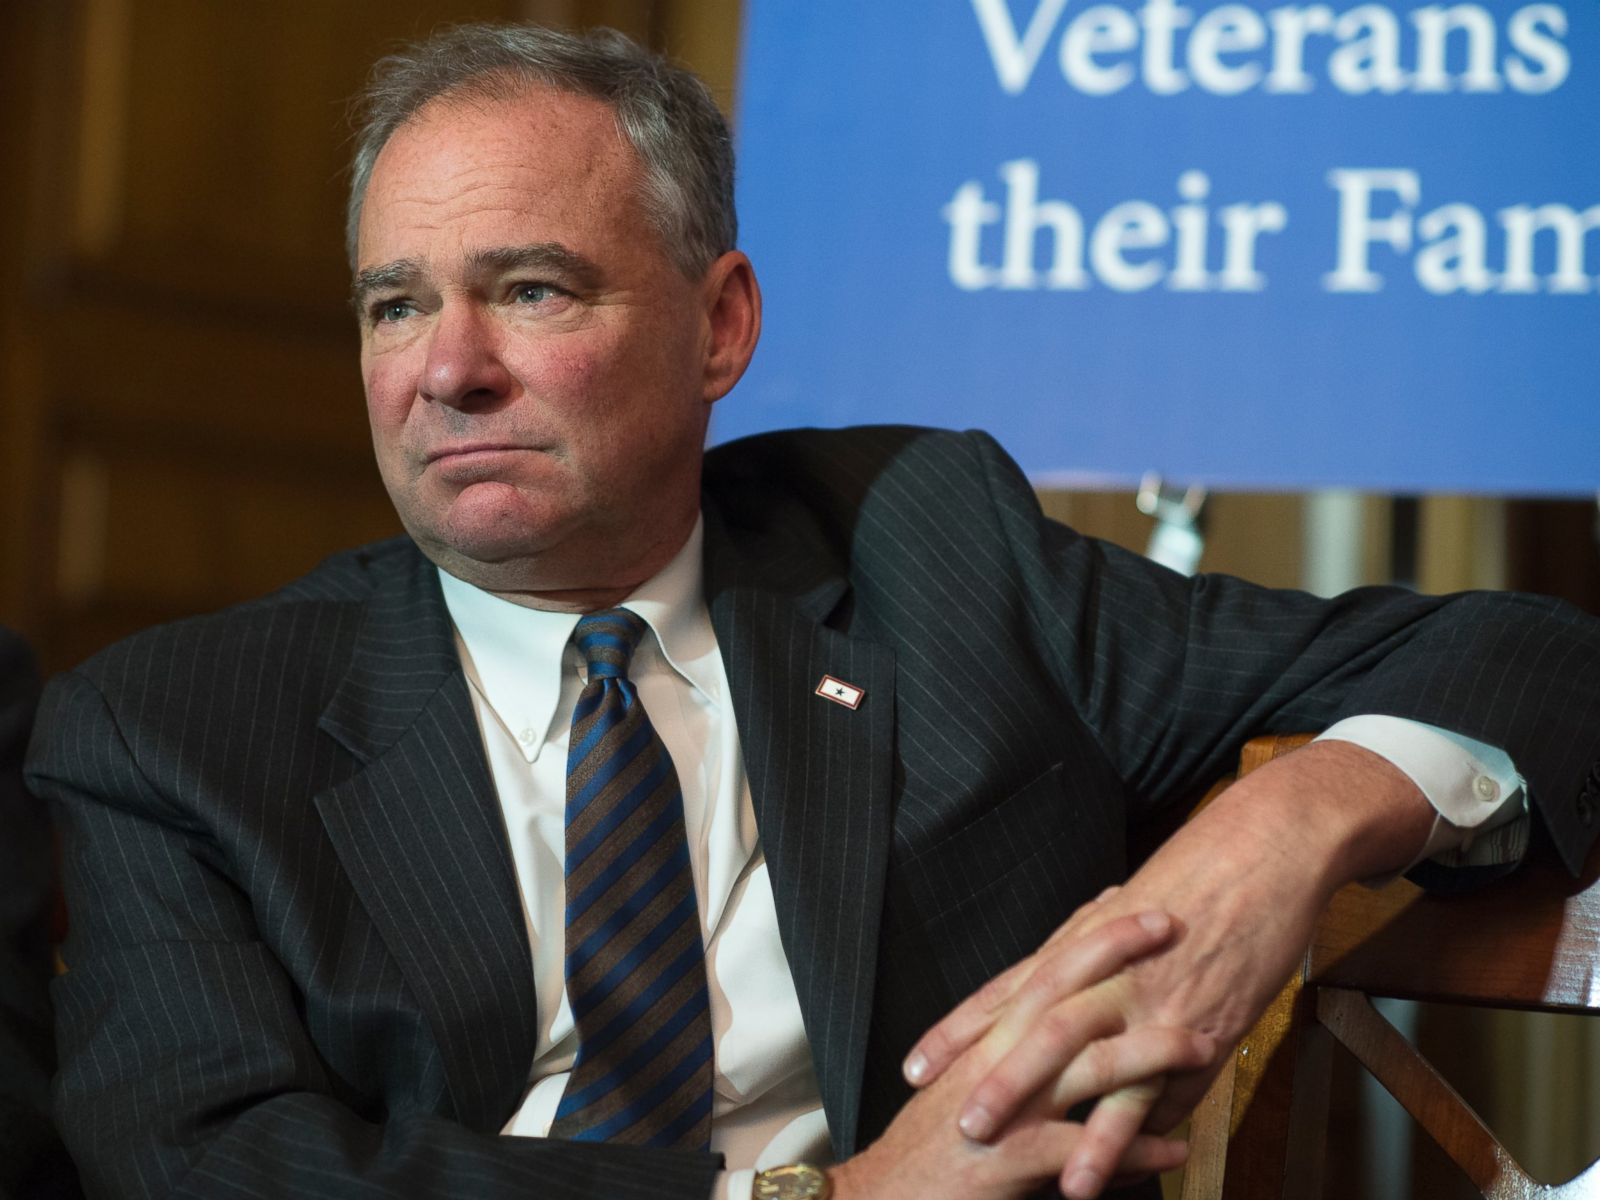 PHOTO: Sen. Tim Kaine, D-Va., attends a news conference with Filipino World War II veterans in the Capitol, June 9, 2016.